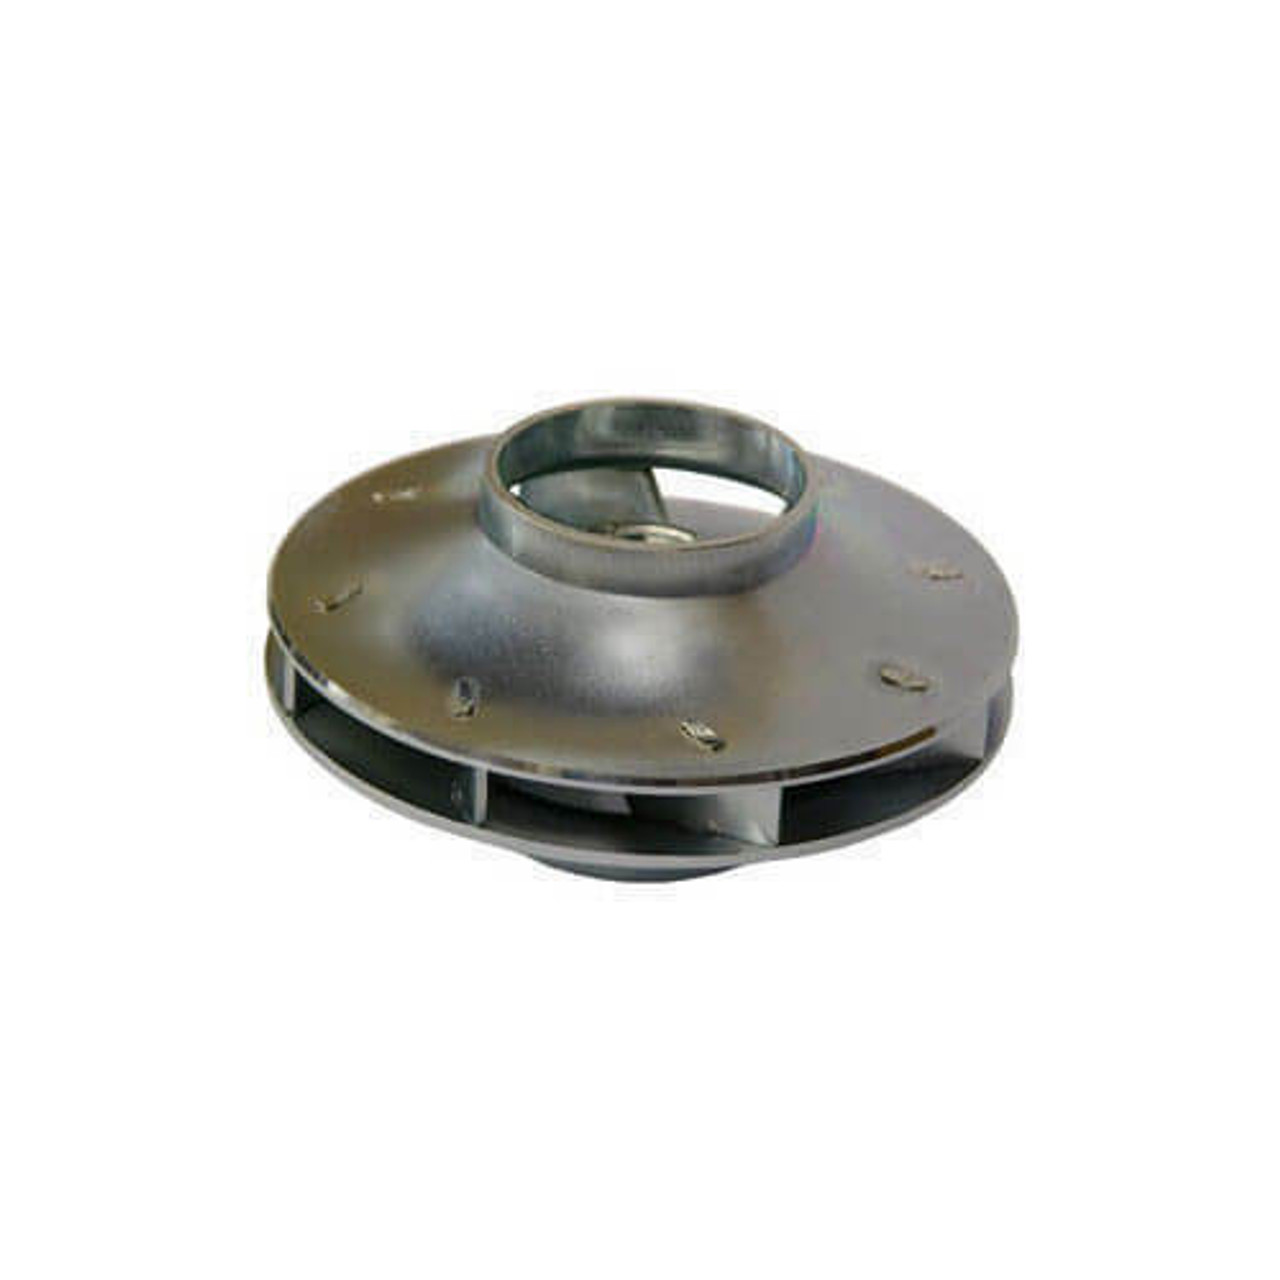 PACO Pump Replacement Parts / Kits Paco Impeller, 304SS with 9.54 Trim